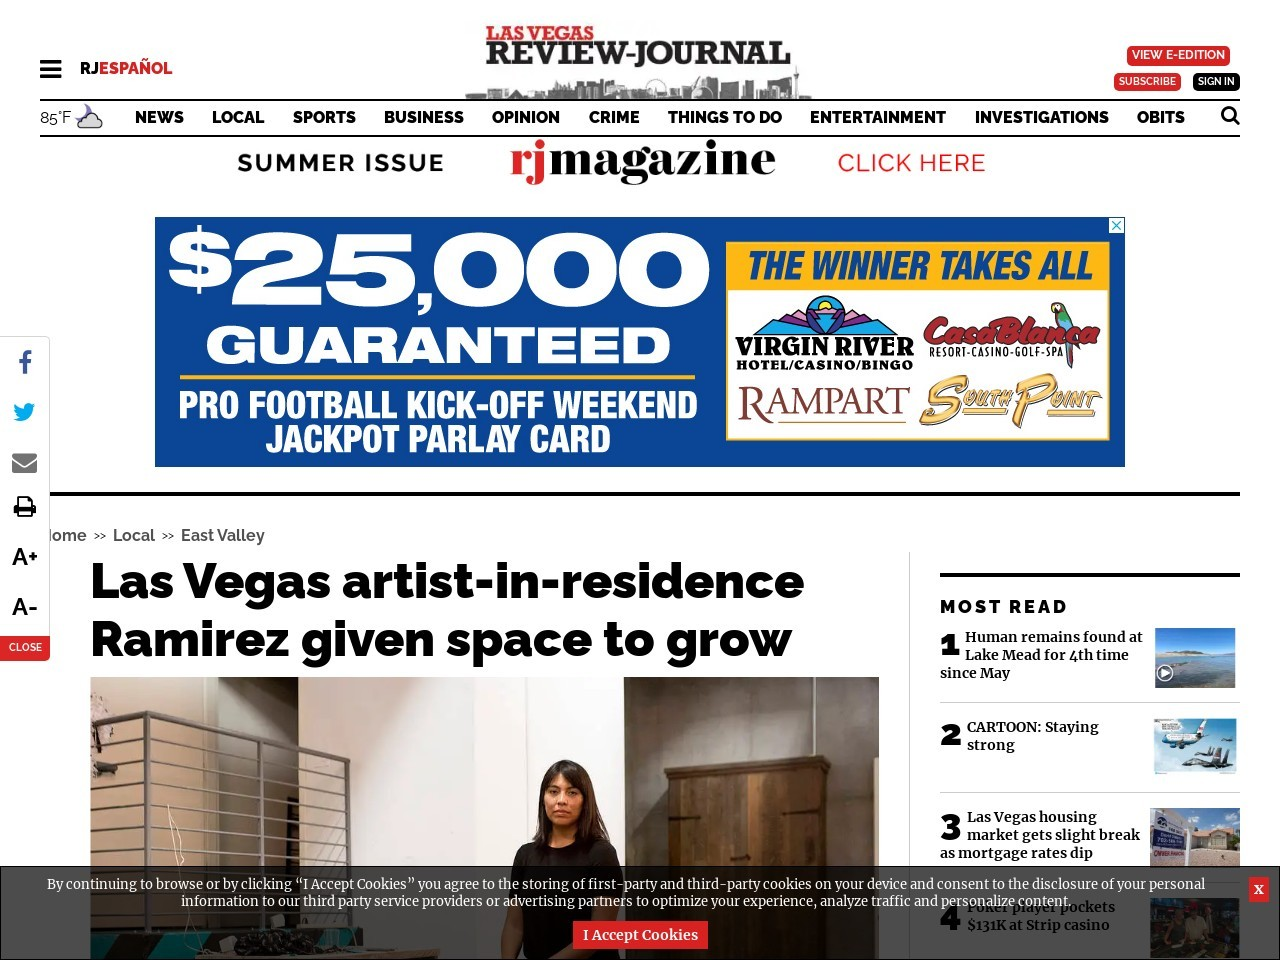 Las Vegas artist-in-residence Ramirez given space to grow